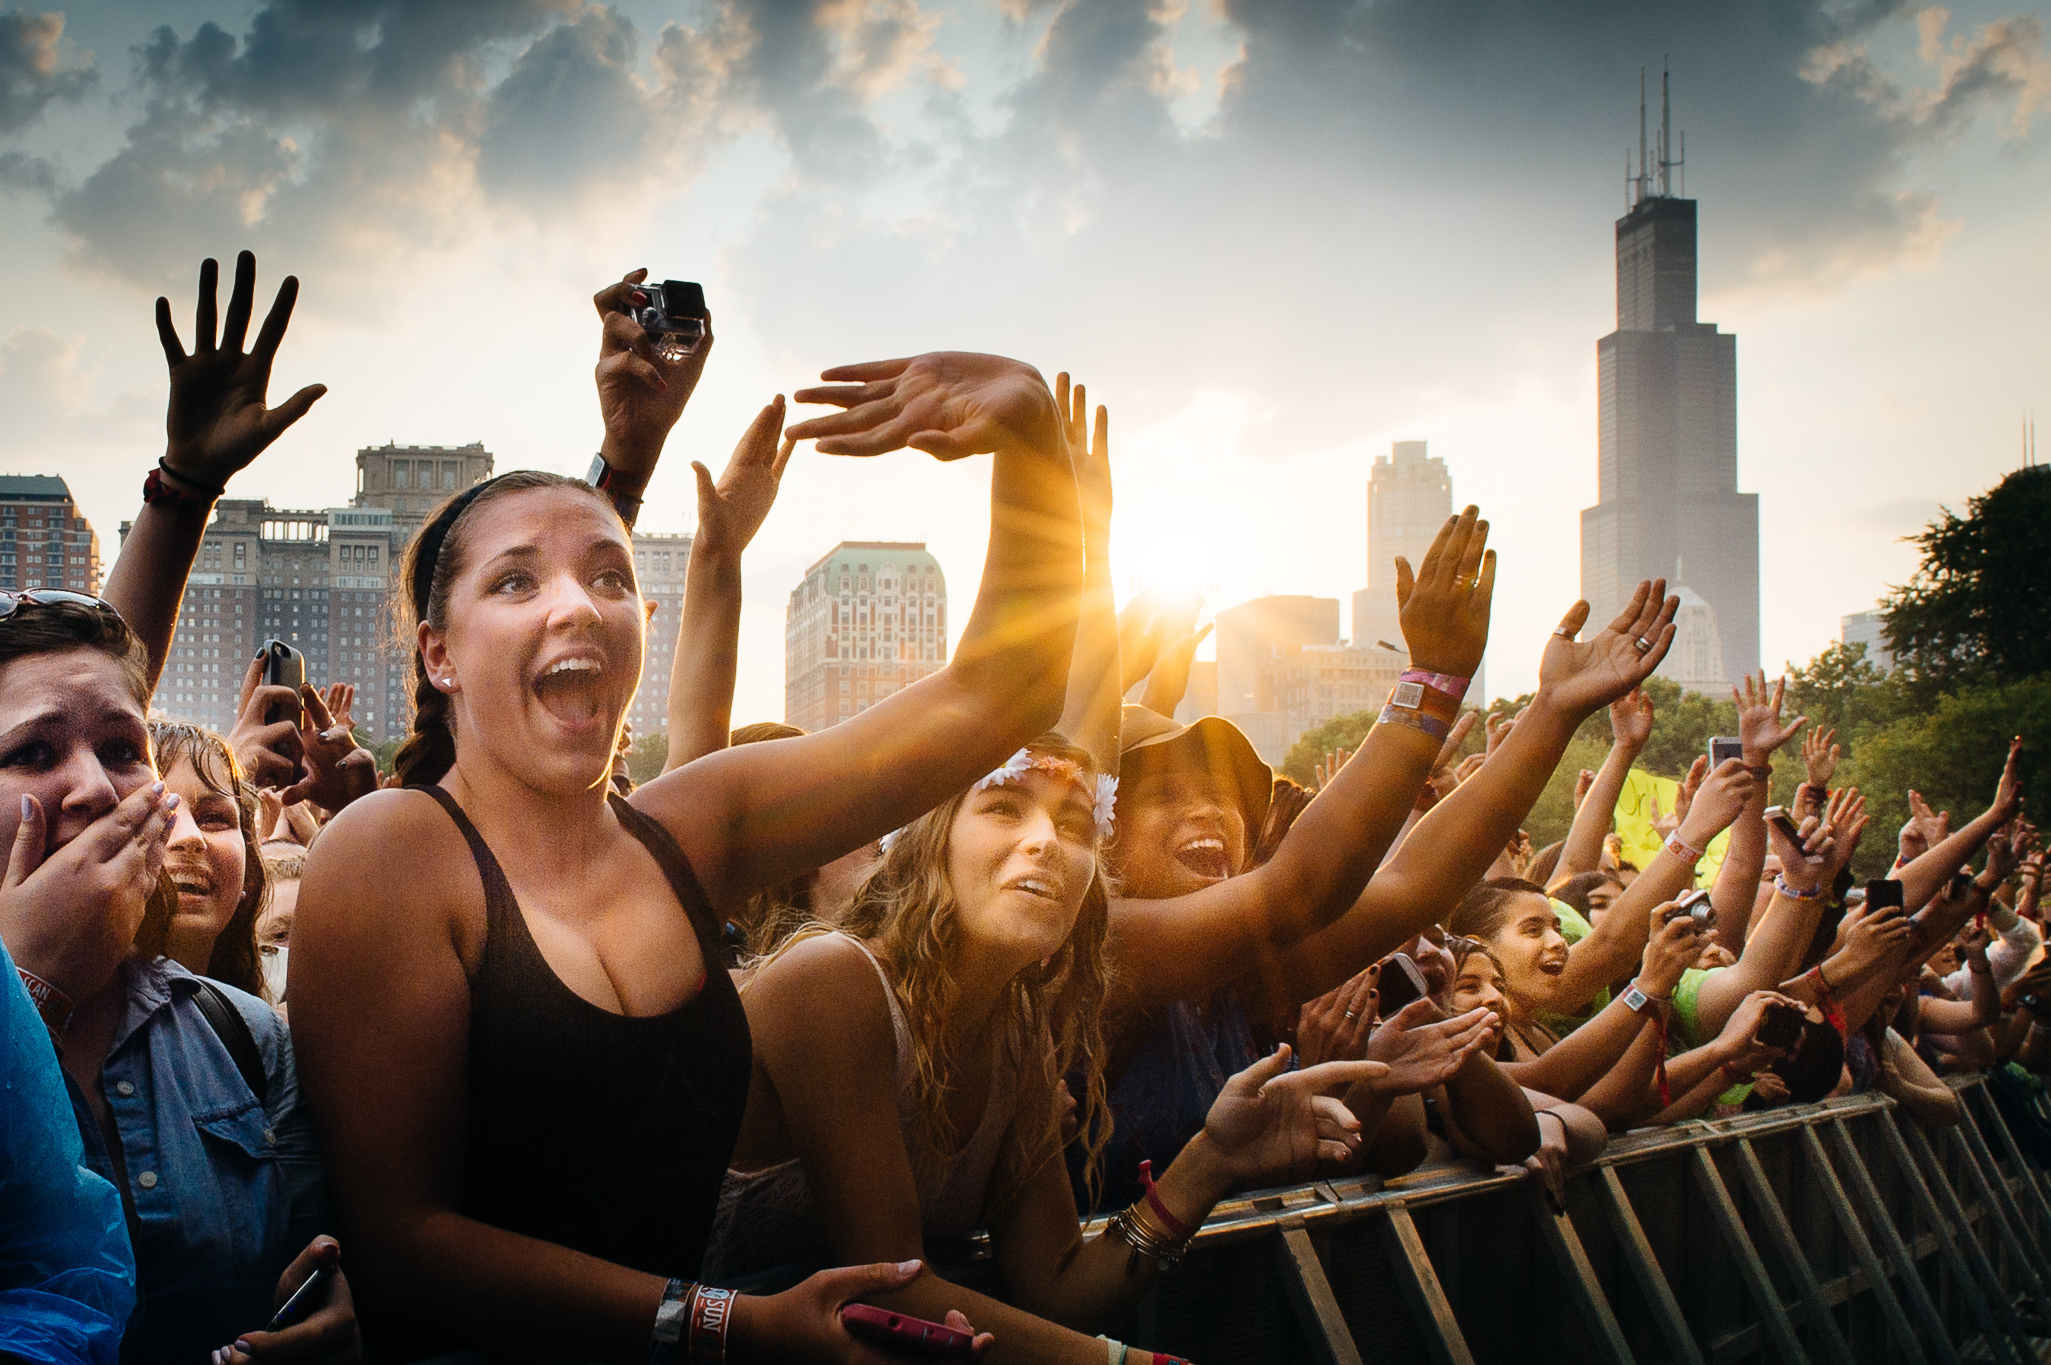 Gorge on bands and street food at Lollapalooza